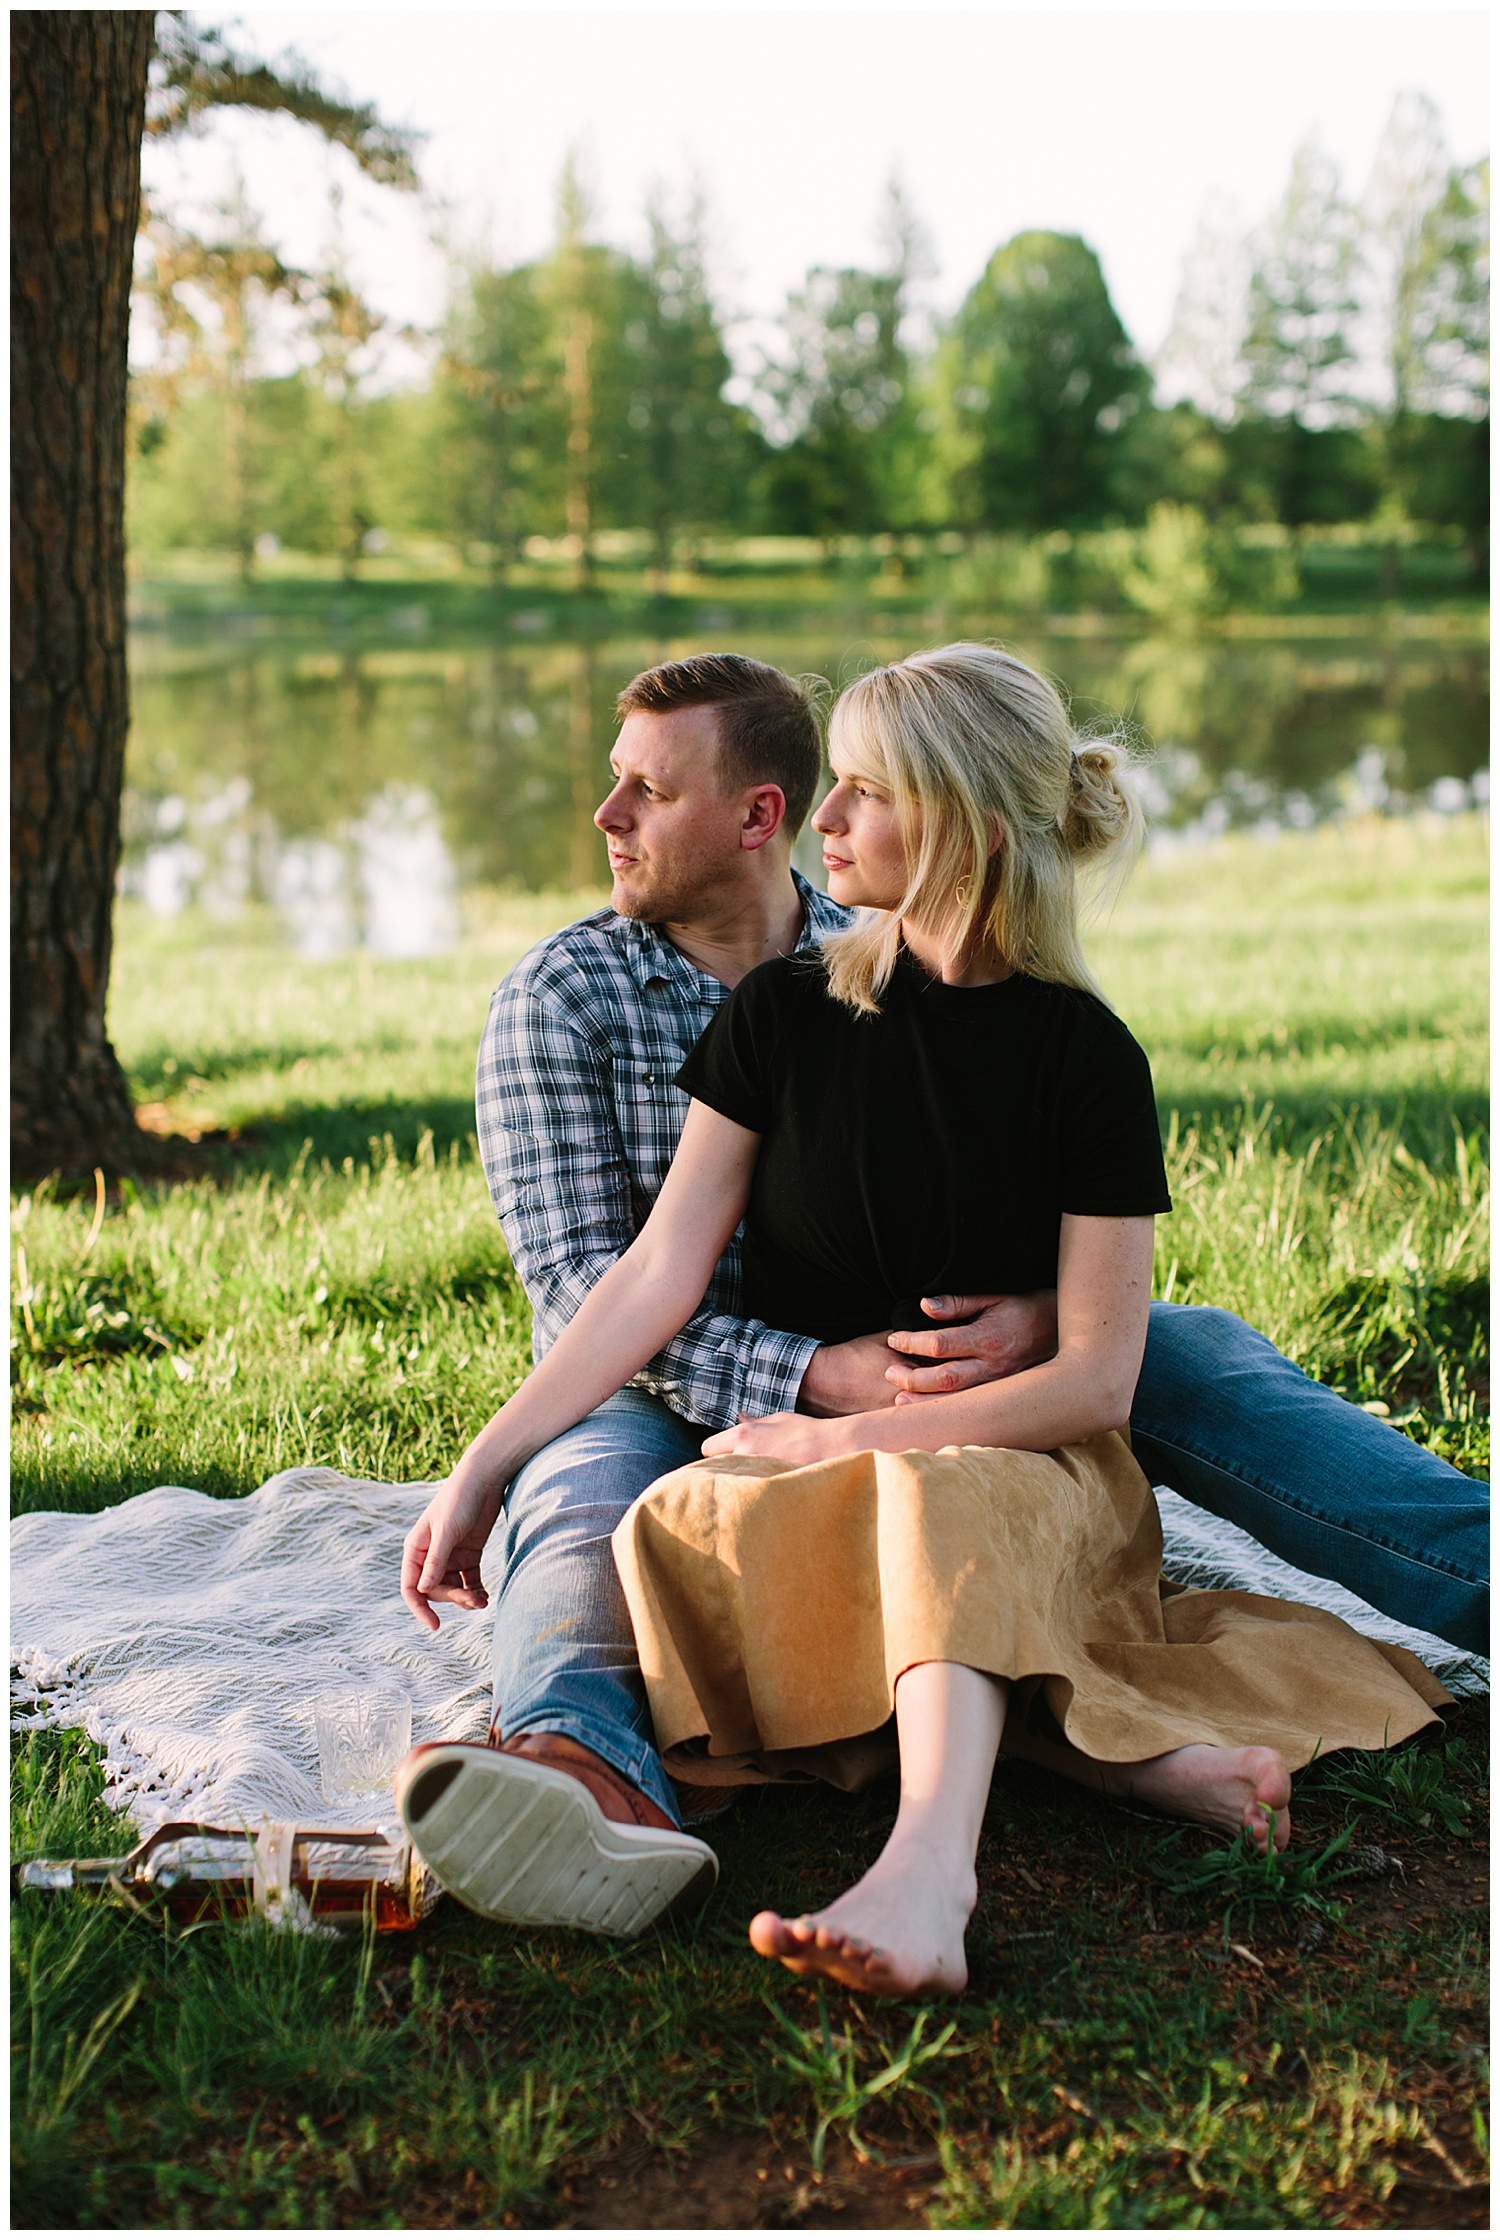 trent.and.kendra.photography.bernheim.forest.photos-57.jpg